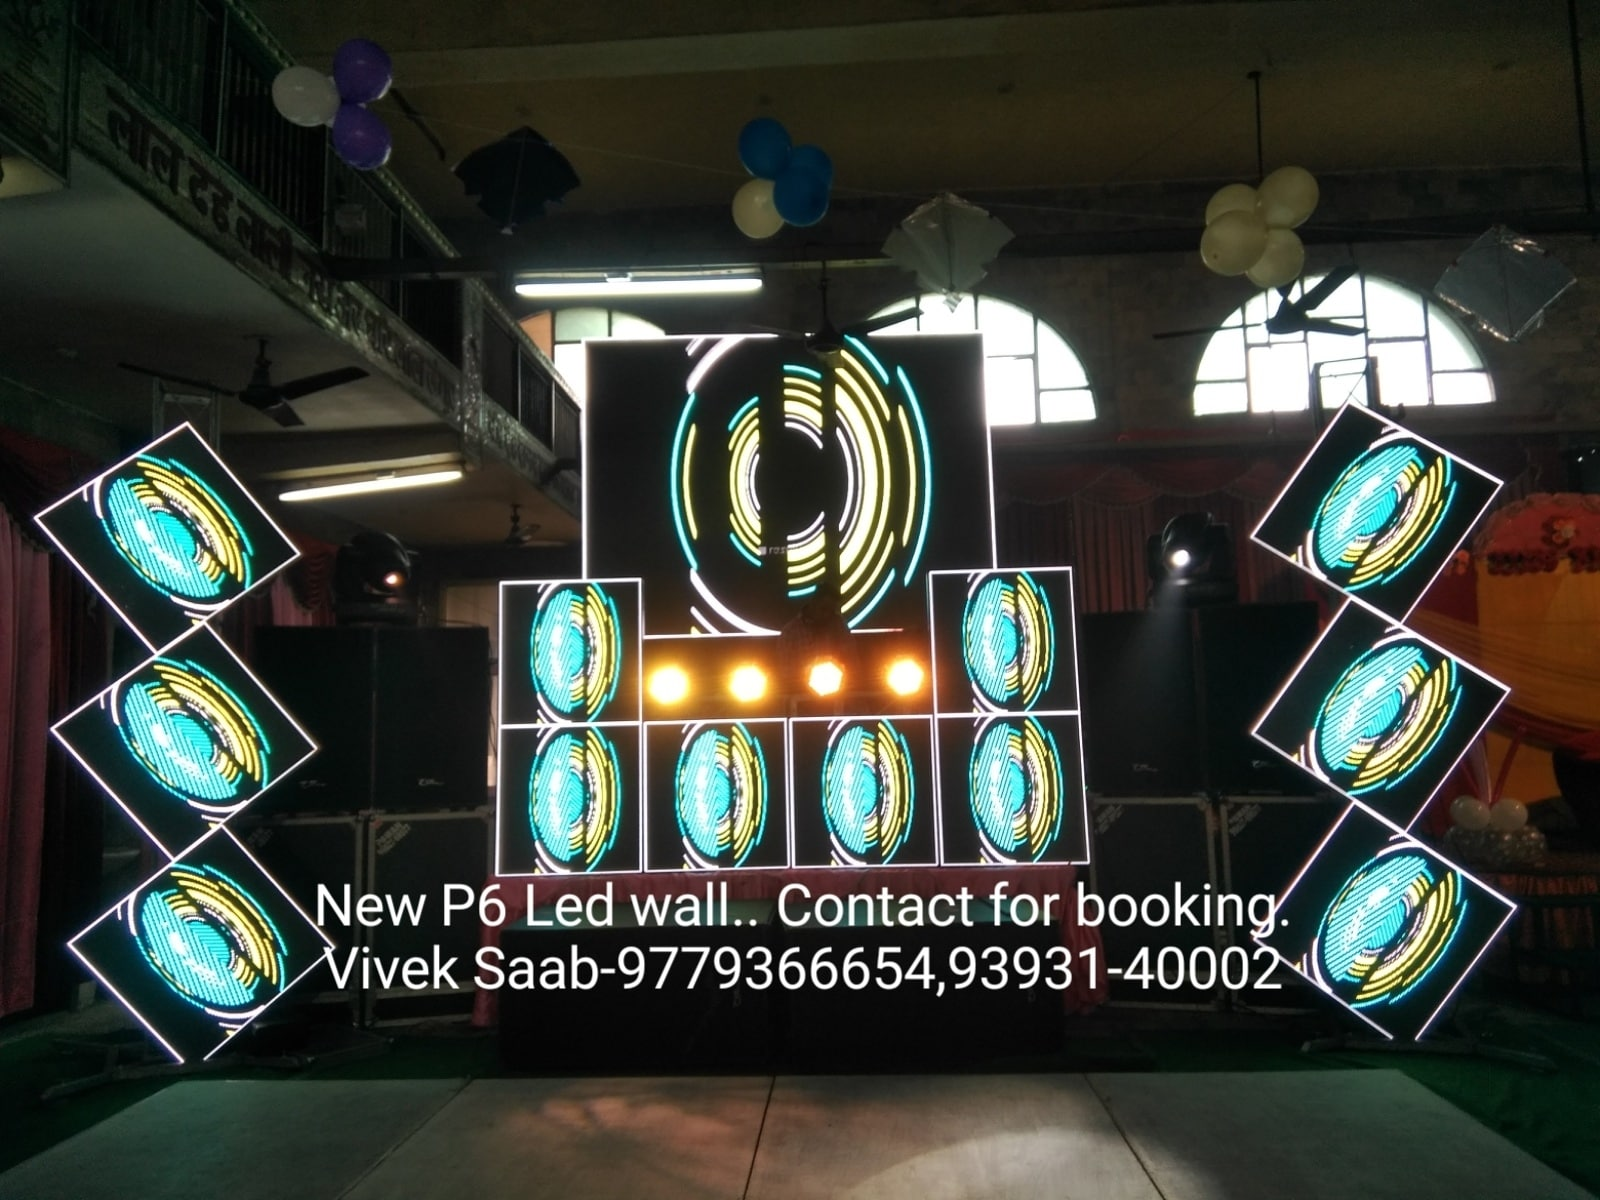 Top Portable Led Screens On Hire in Lalton Kalan - Best